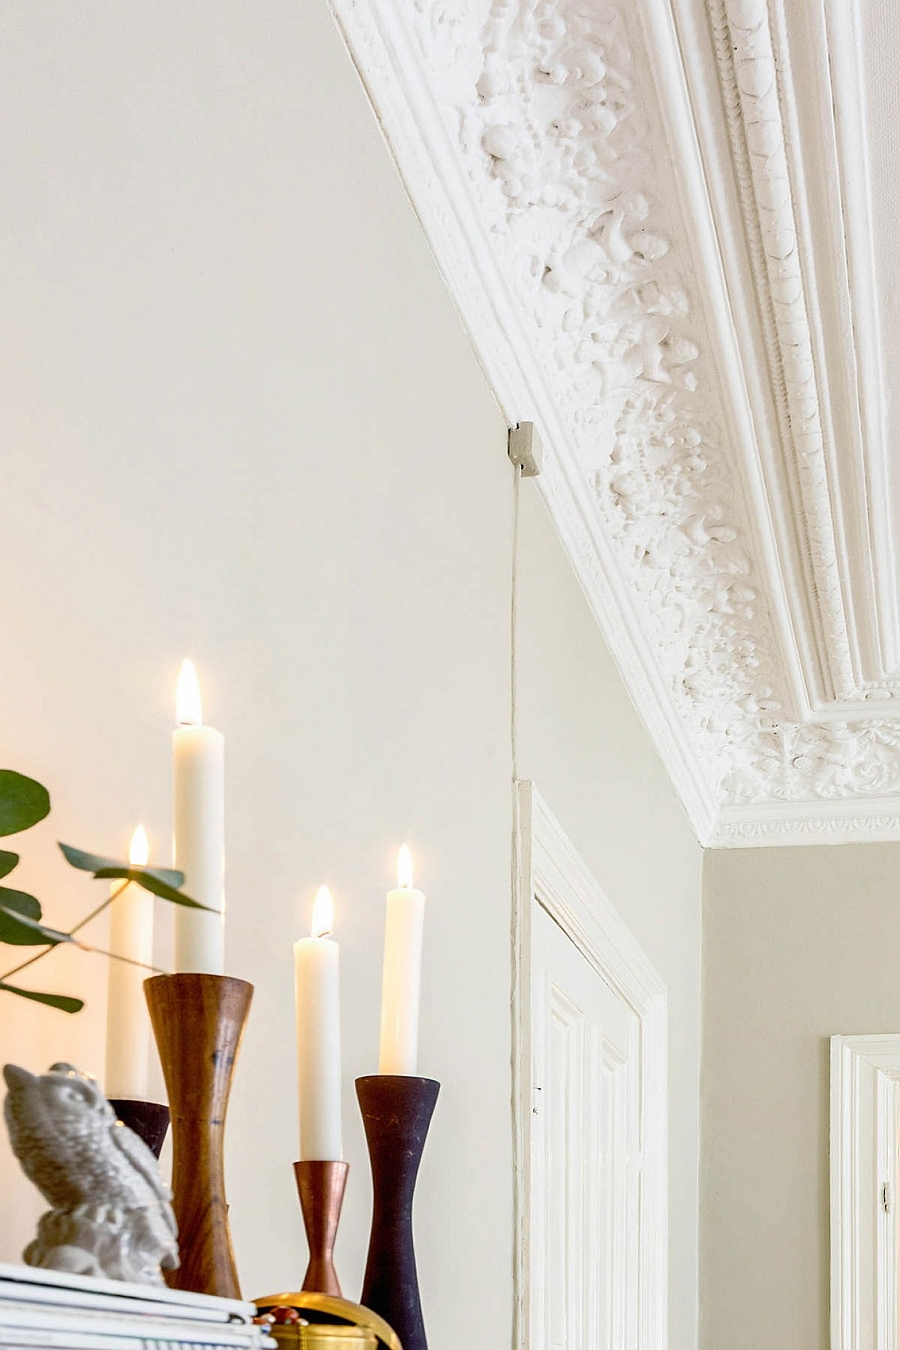 Wall ceiling and candles add sense of timeless style to the room